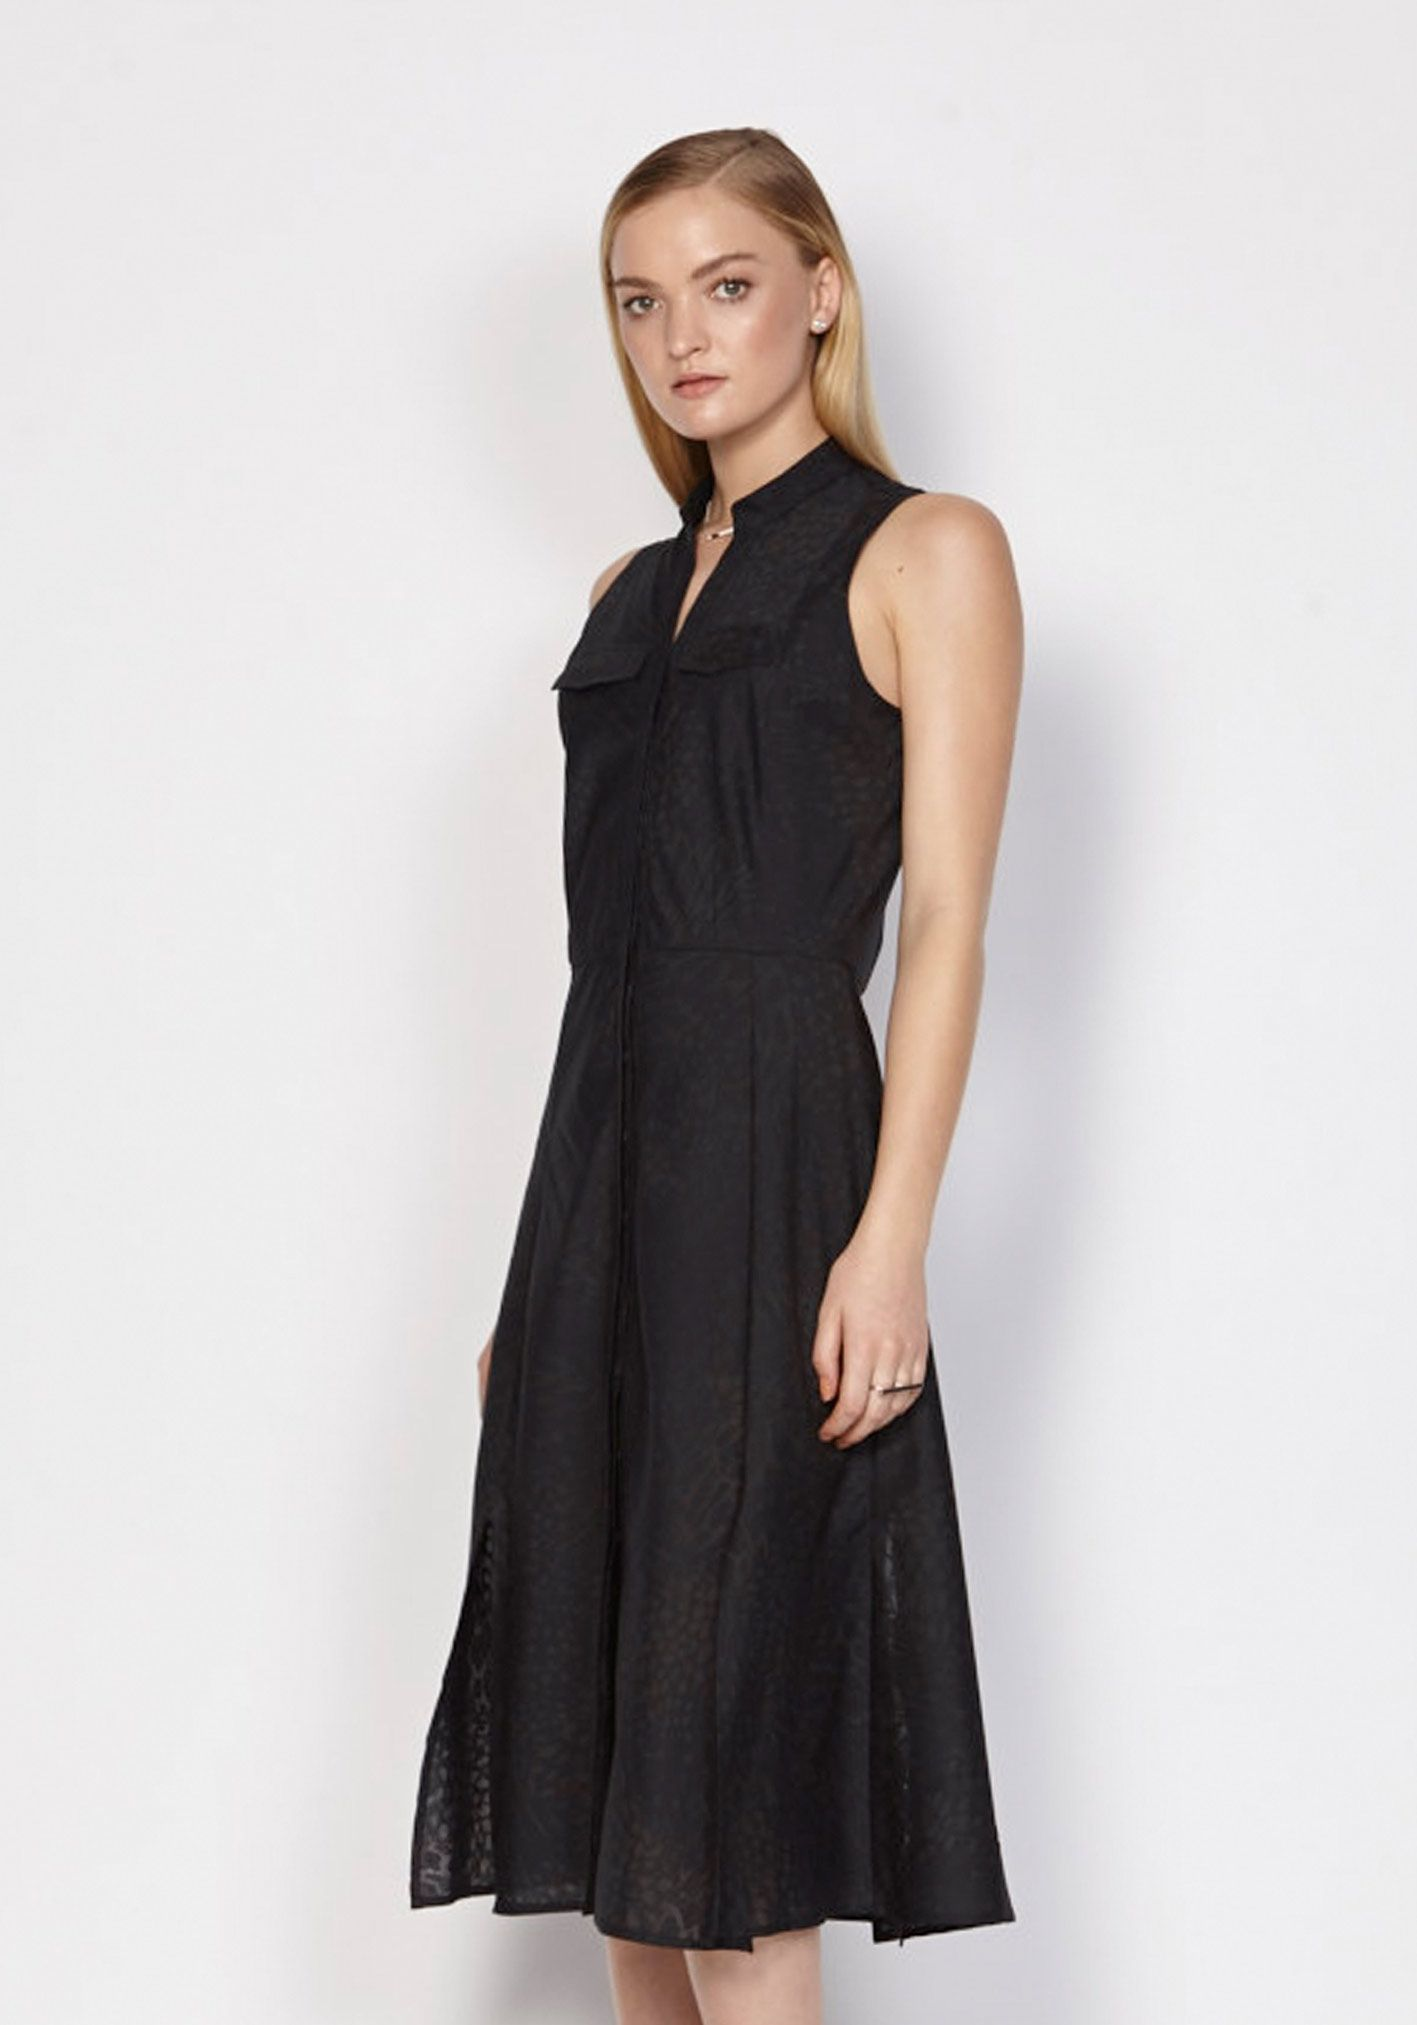 Olivia Voile Burn Out Shirt Dress In Black | Dresses | Shop the latest women's fashion at Oncewas